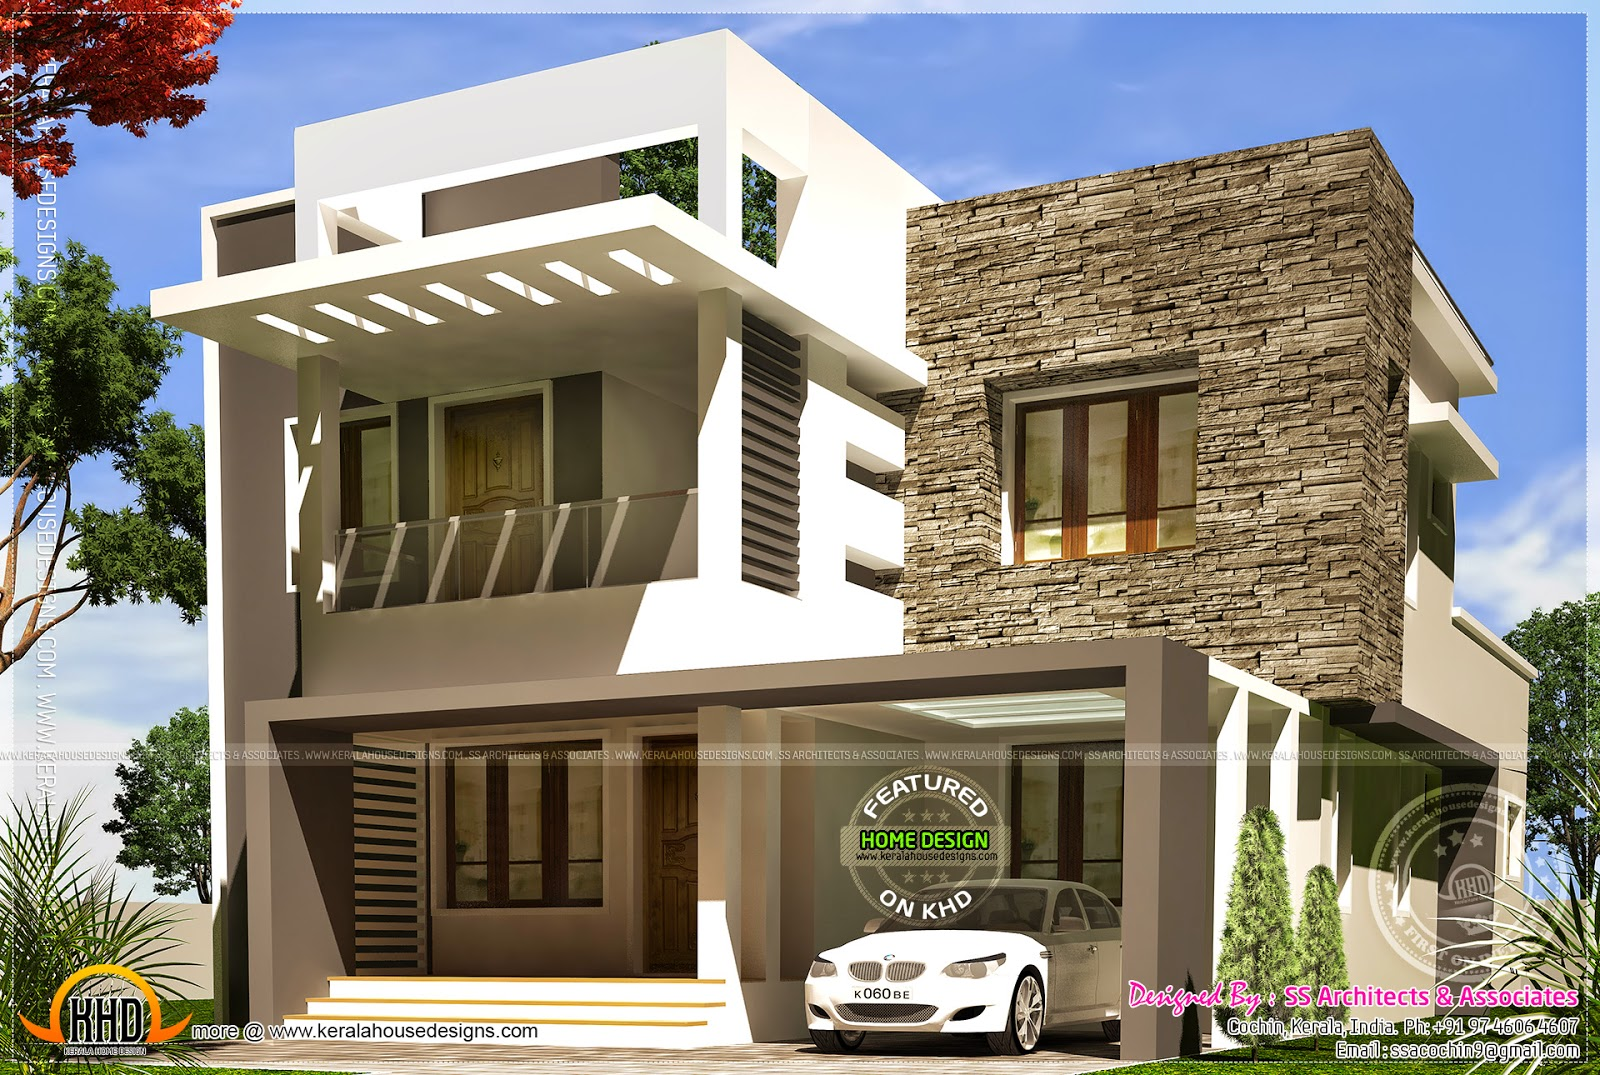 Beautiful contemporary villa in 1700 kerala home design and floor plans - Calculating square footage of a house pict ...